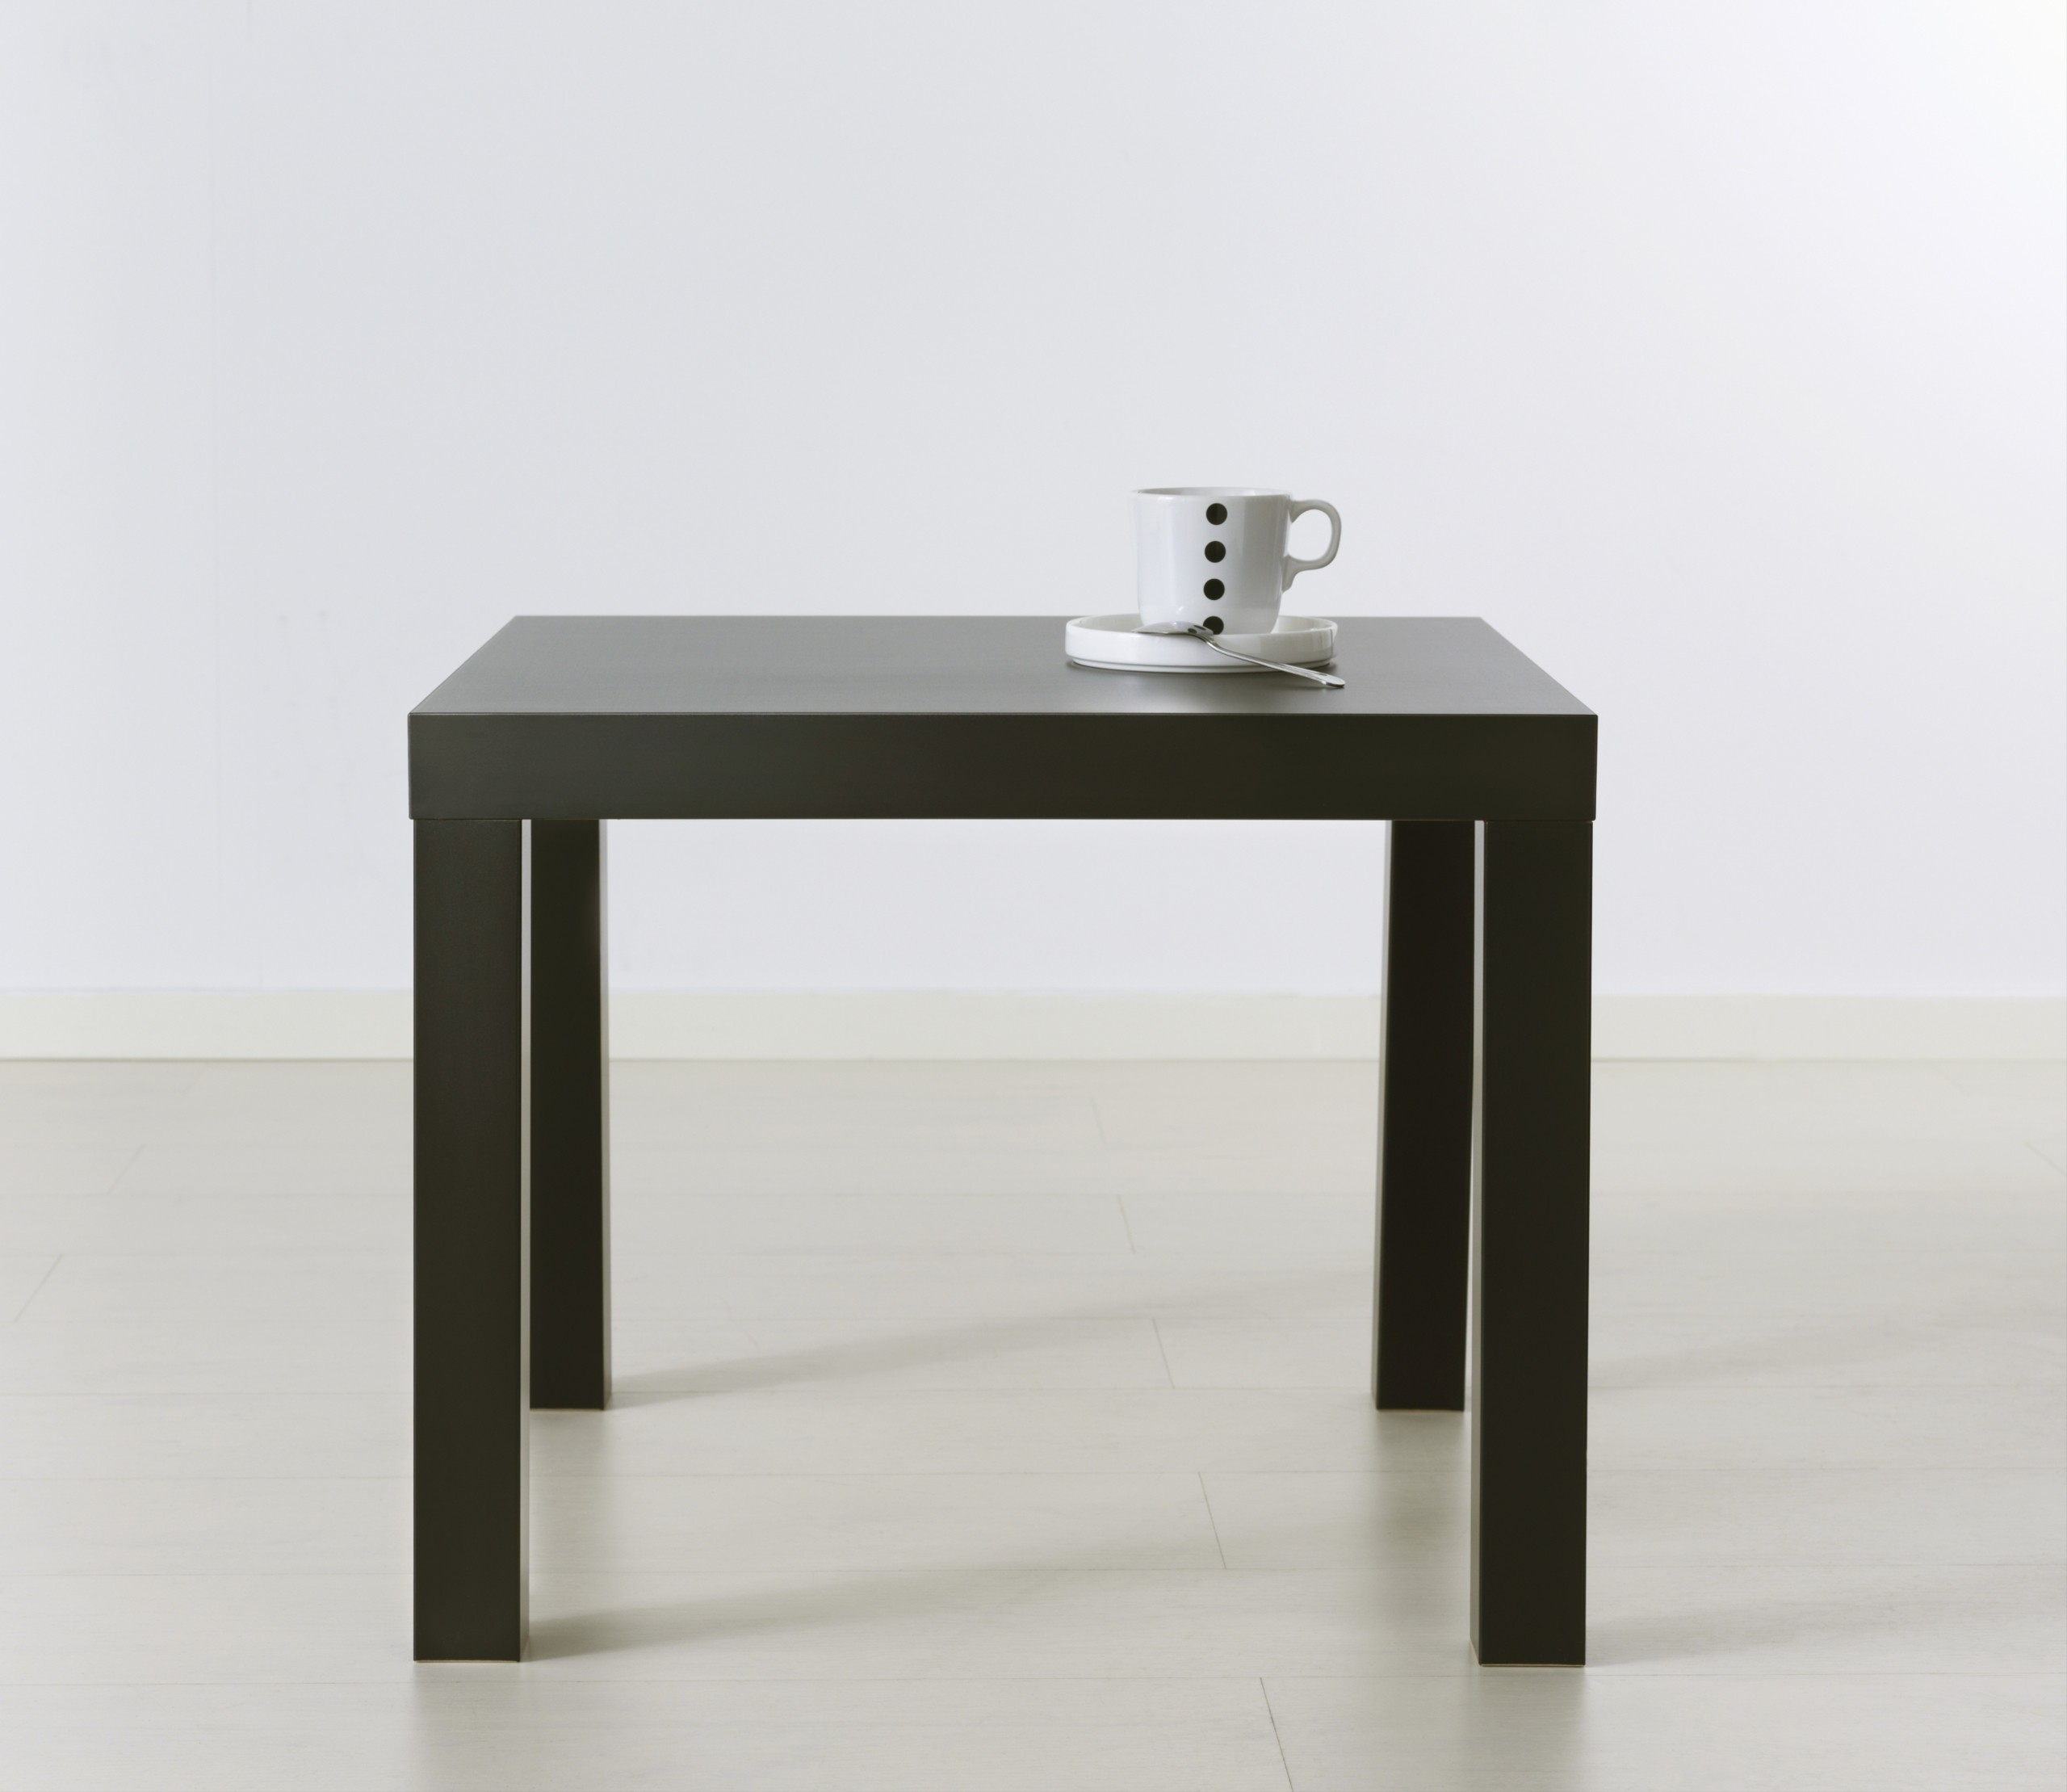 Ikea Lack Side Table With Extension Legs (Black)